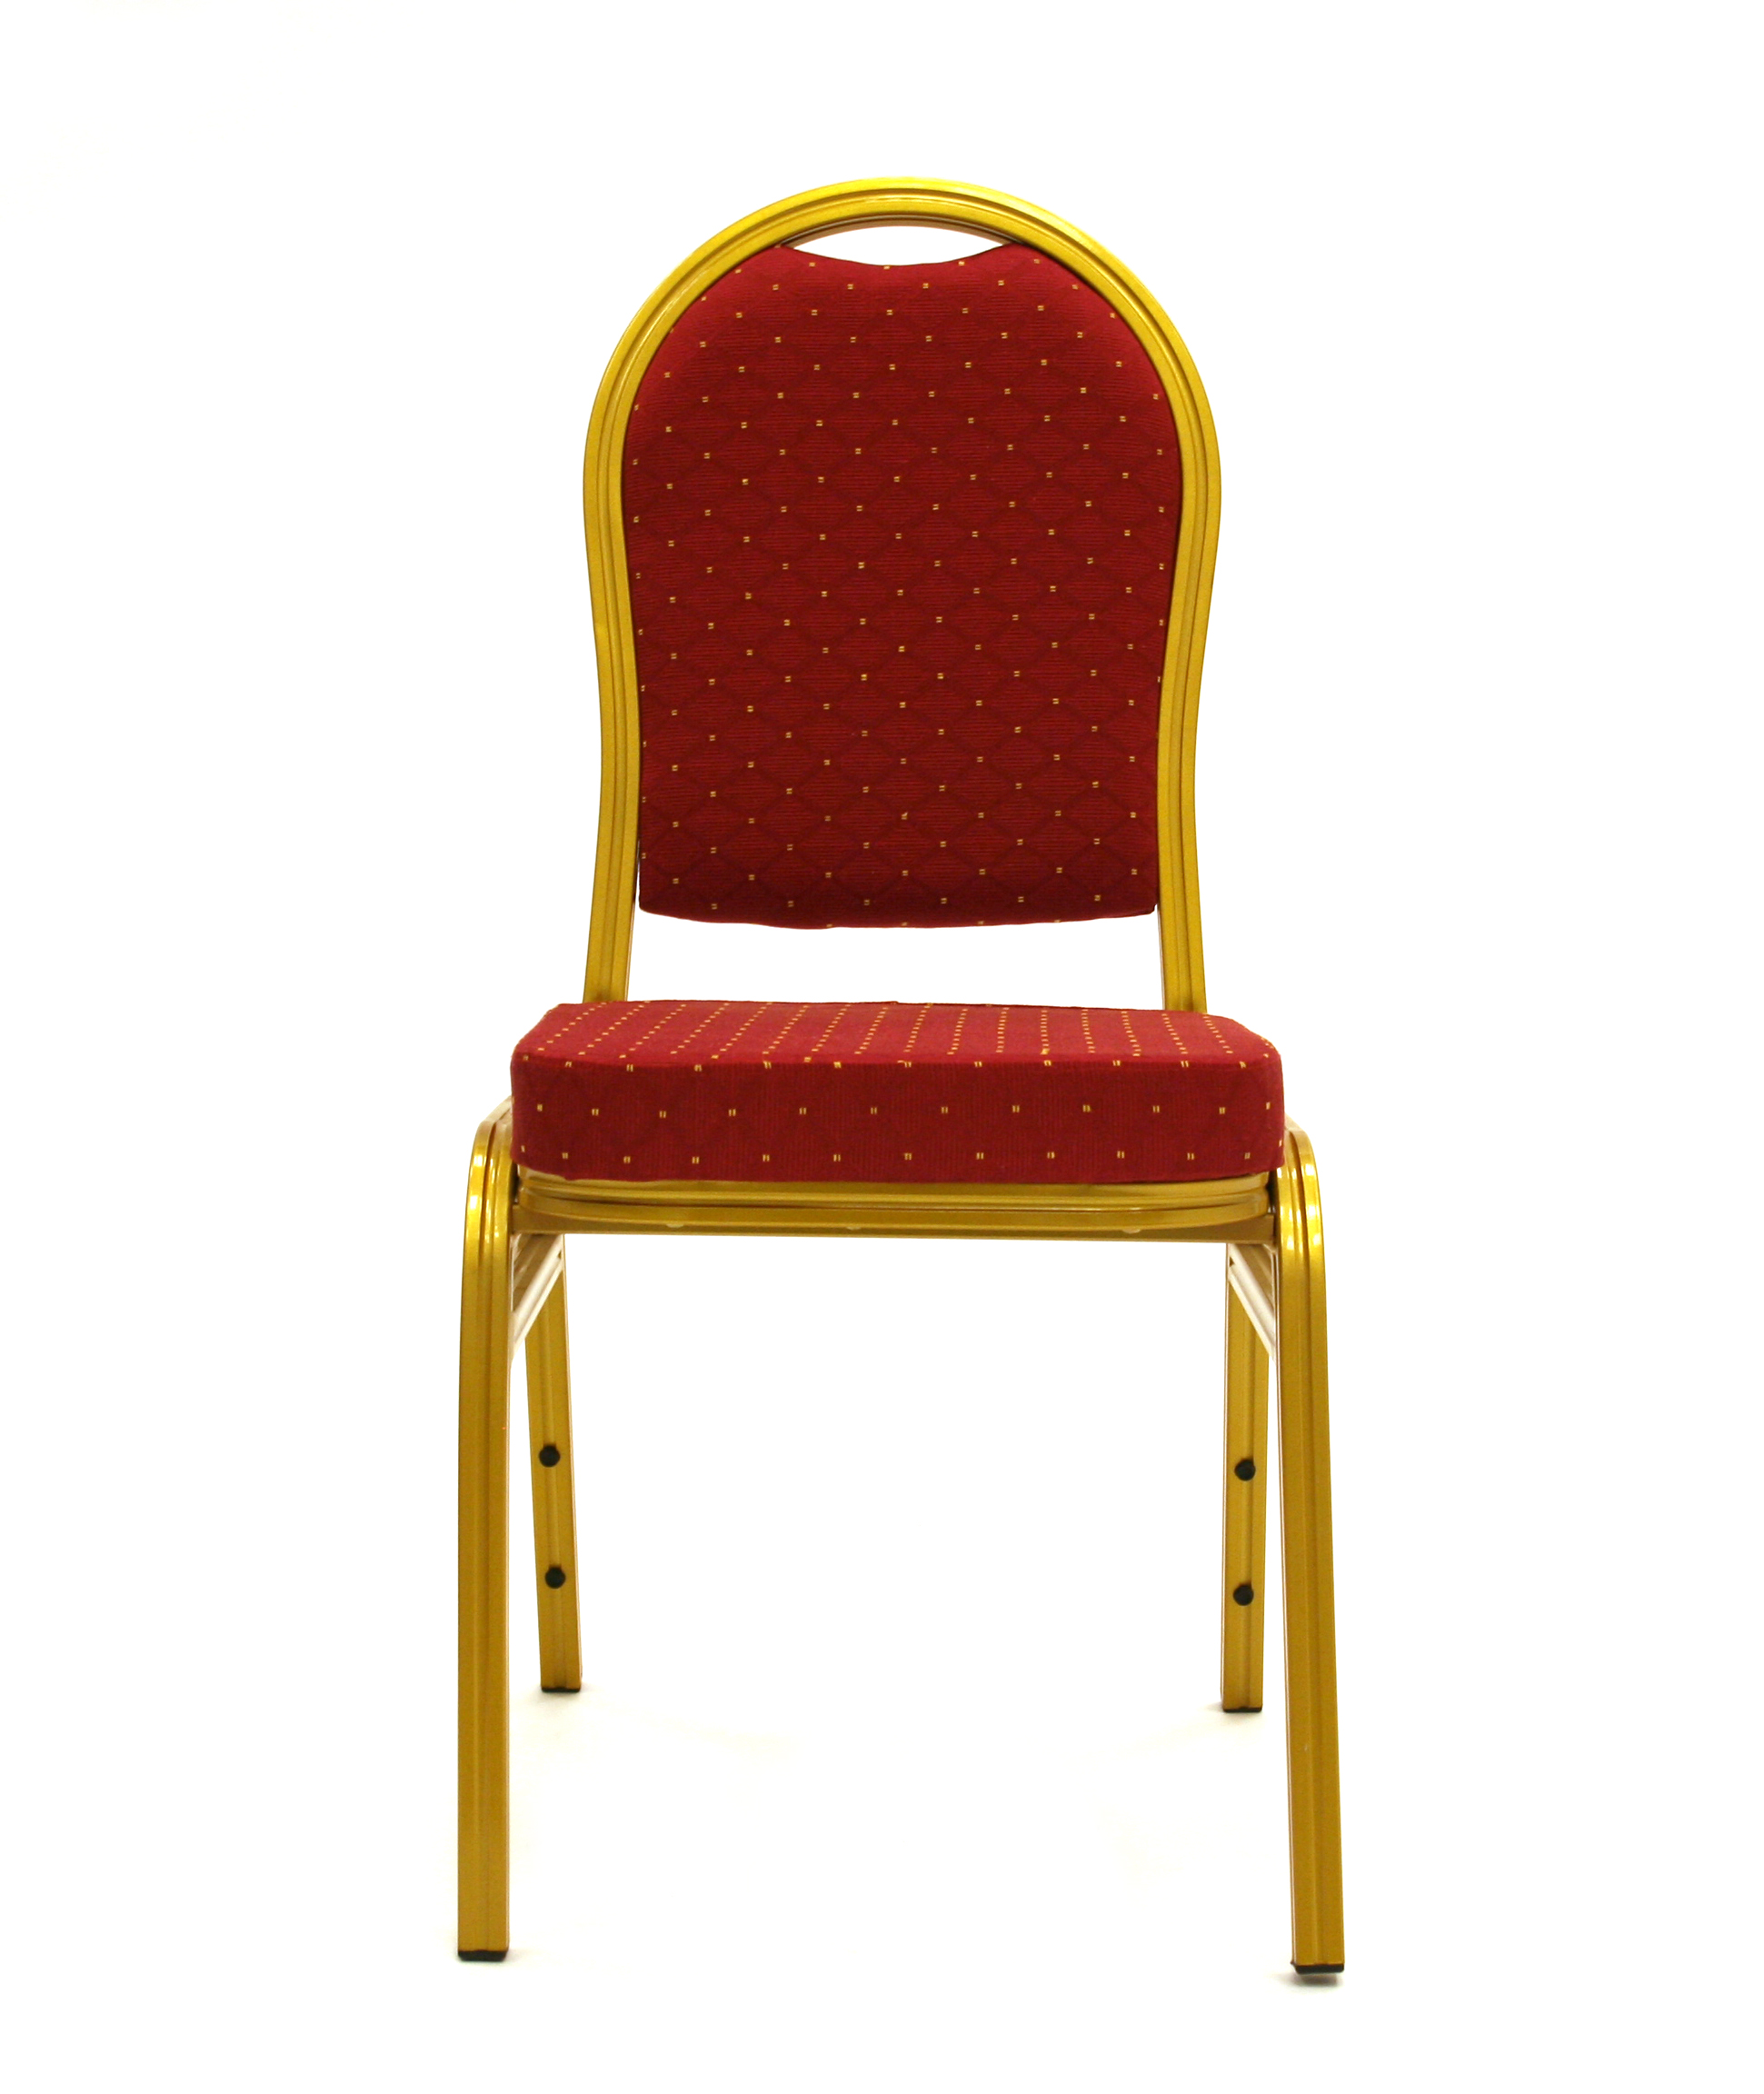 Front View of Gold Frame Red Padding Banqueting Chair - BE Furniture Sales